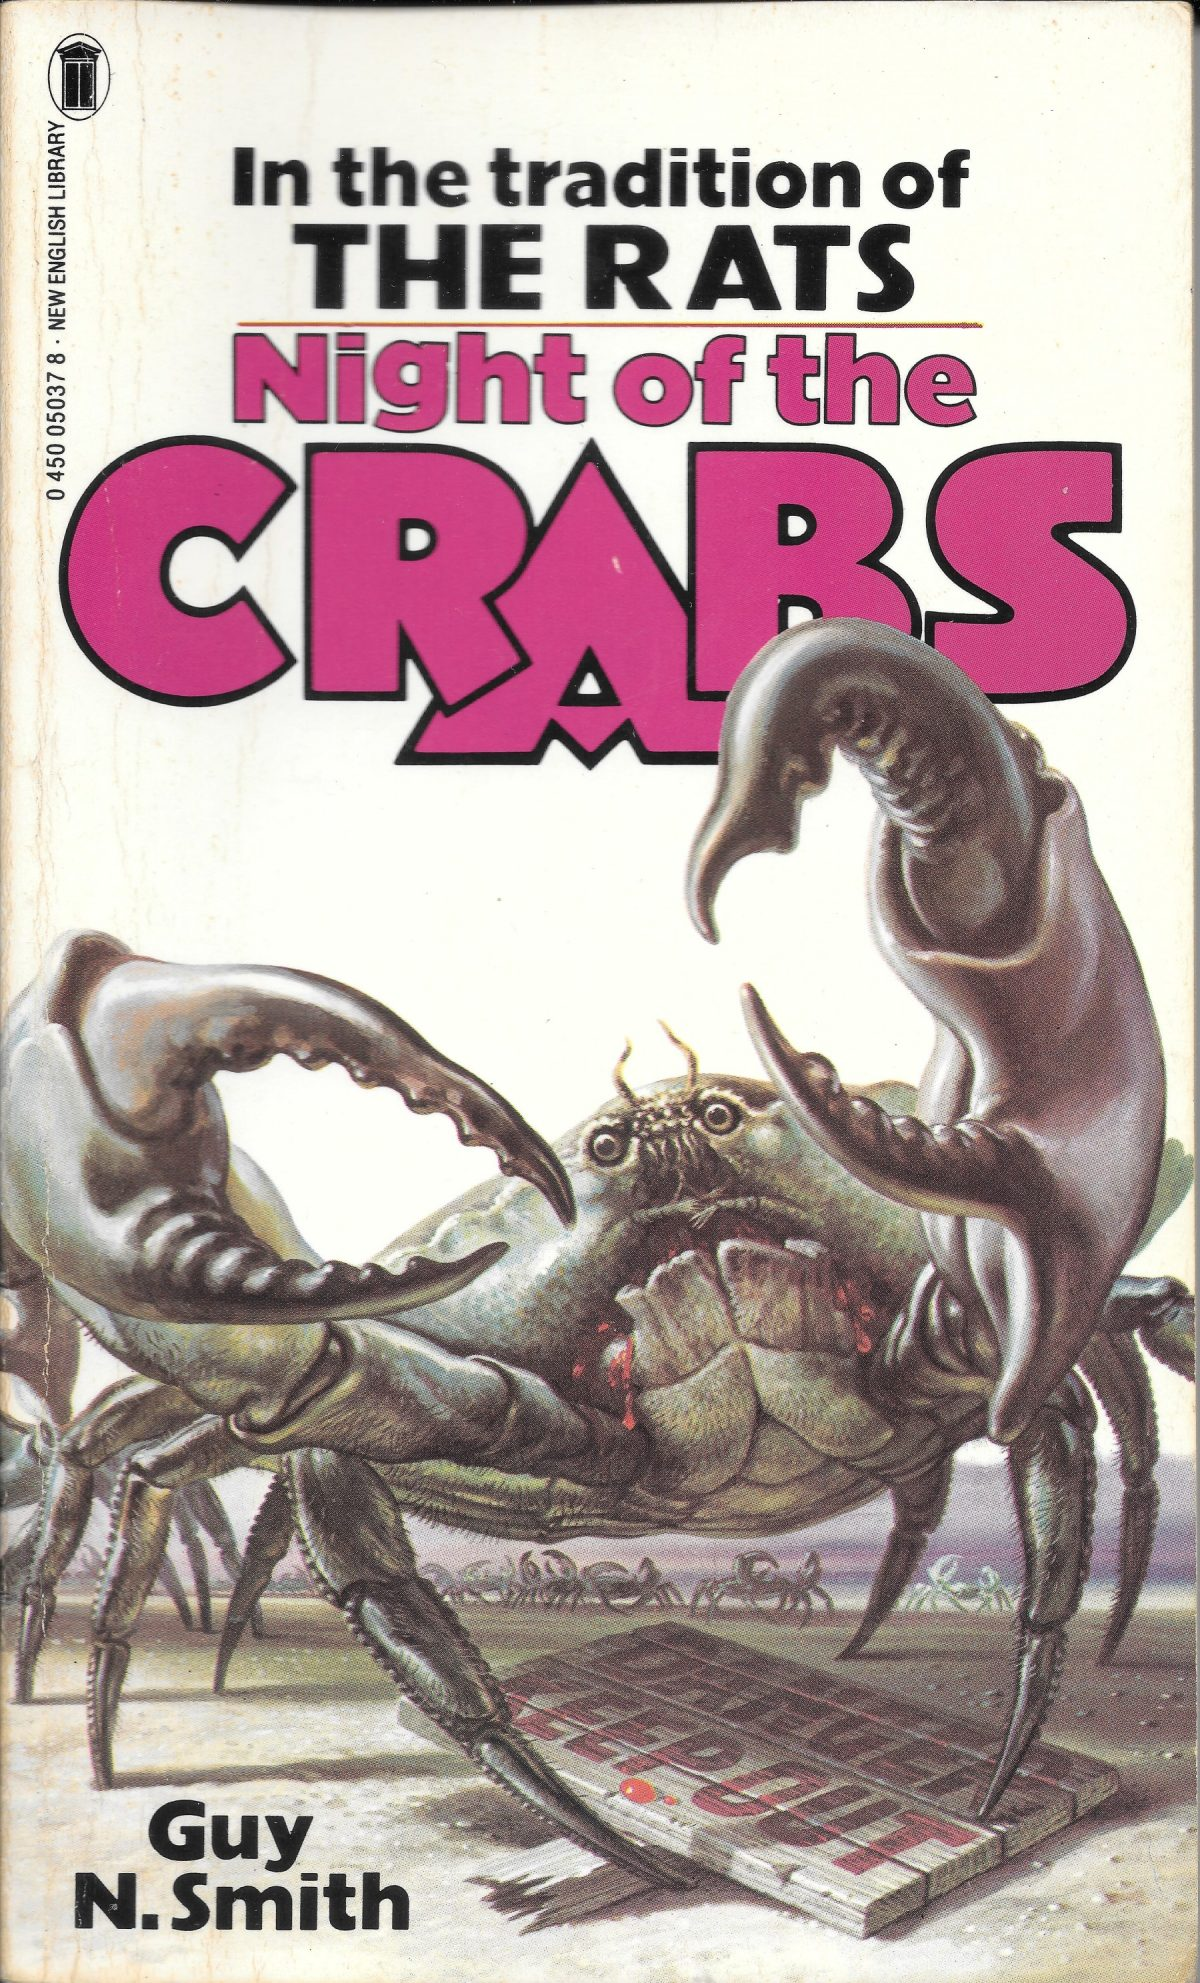 Guy N Smith, horror fictions, horror, books, Night of the Crabs